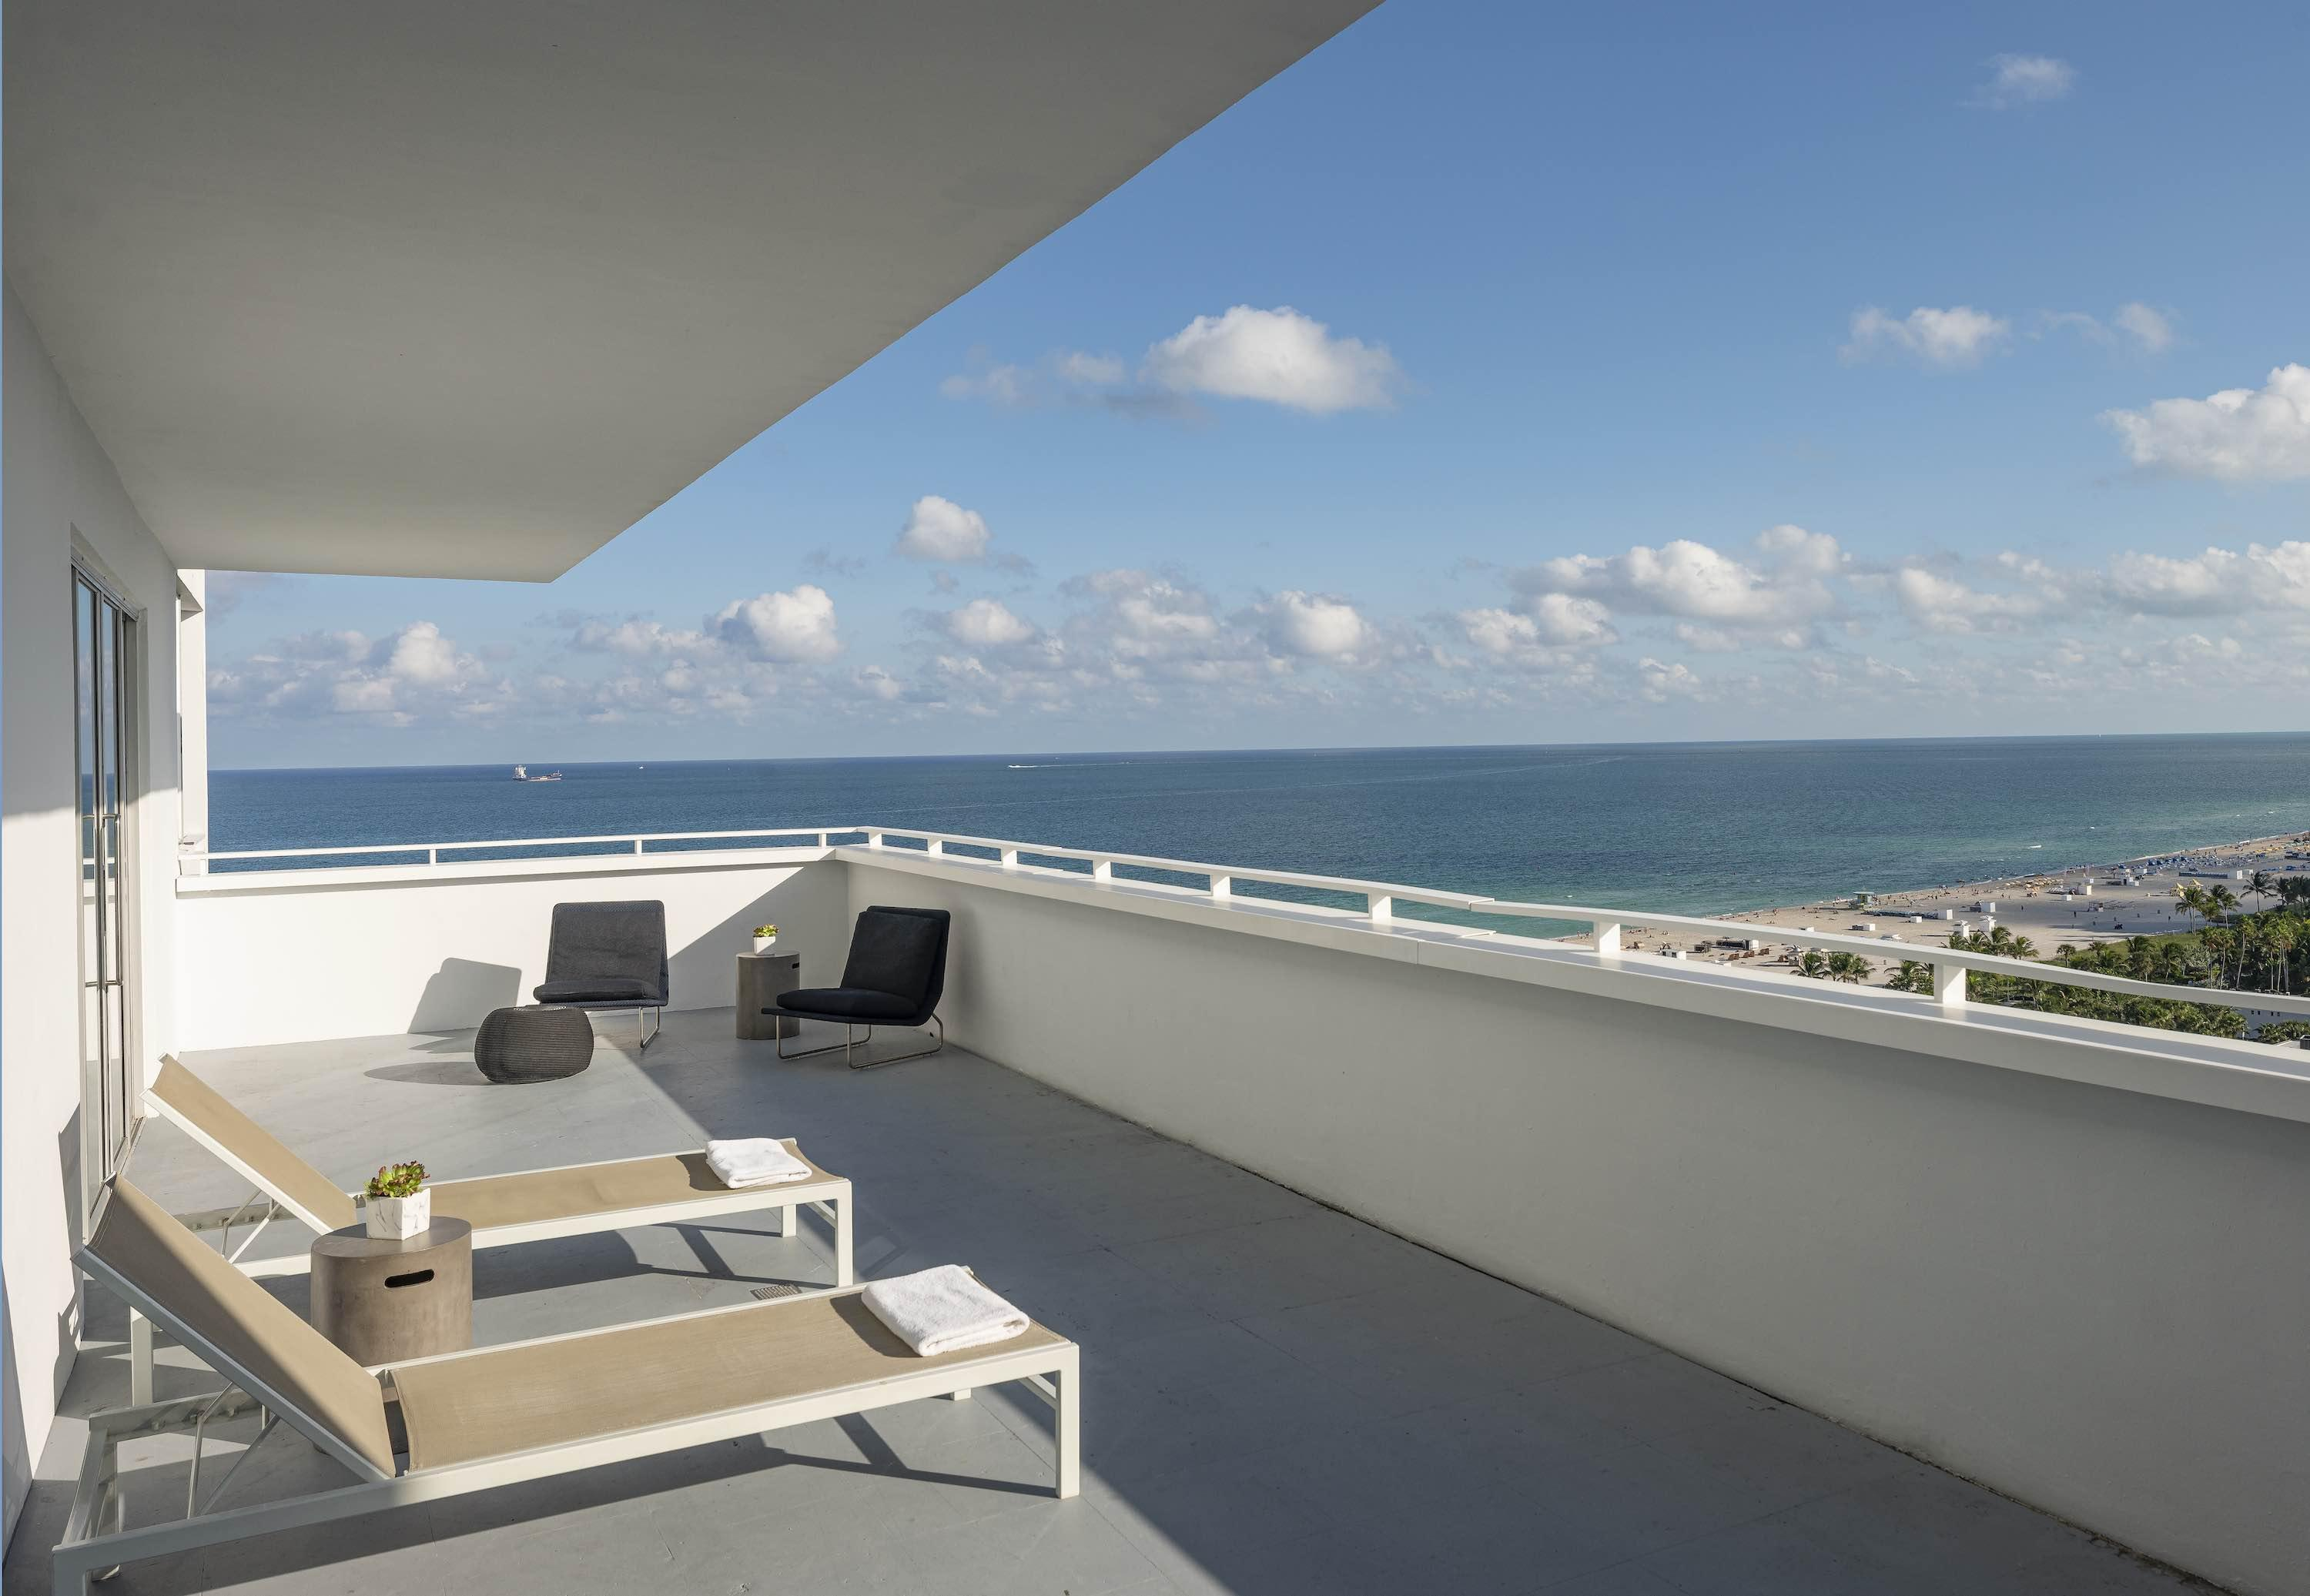 hotel suite balcony overlooking the ocean